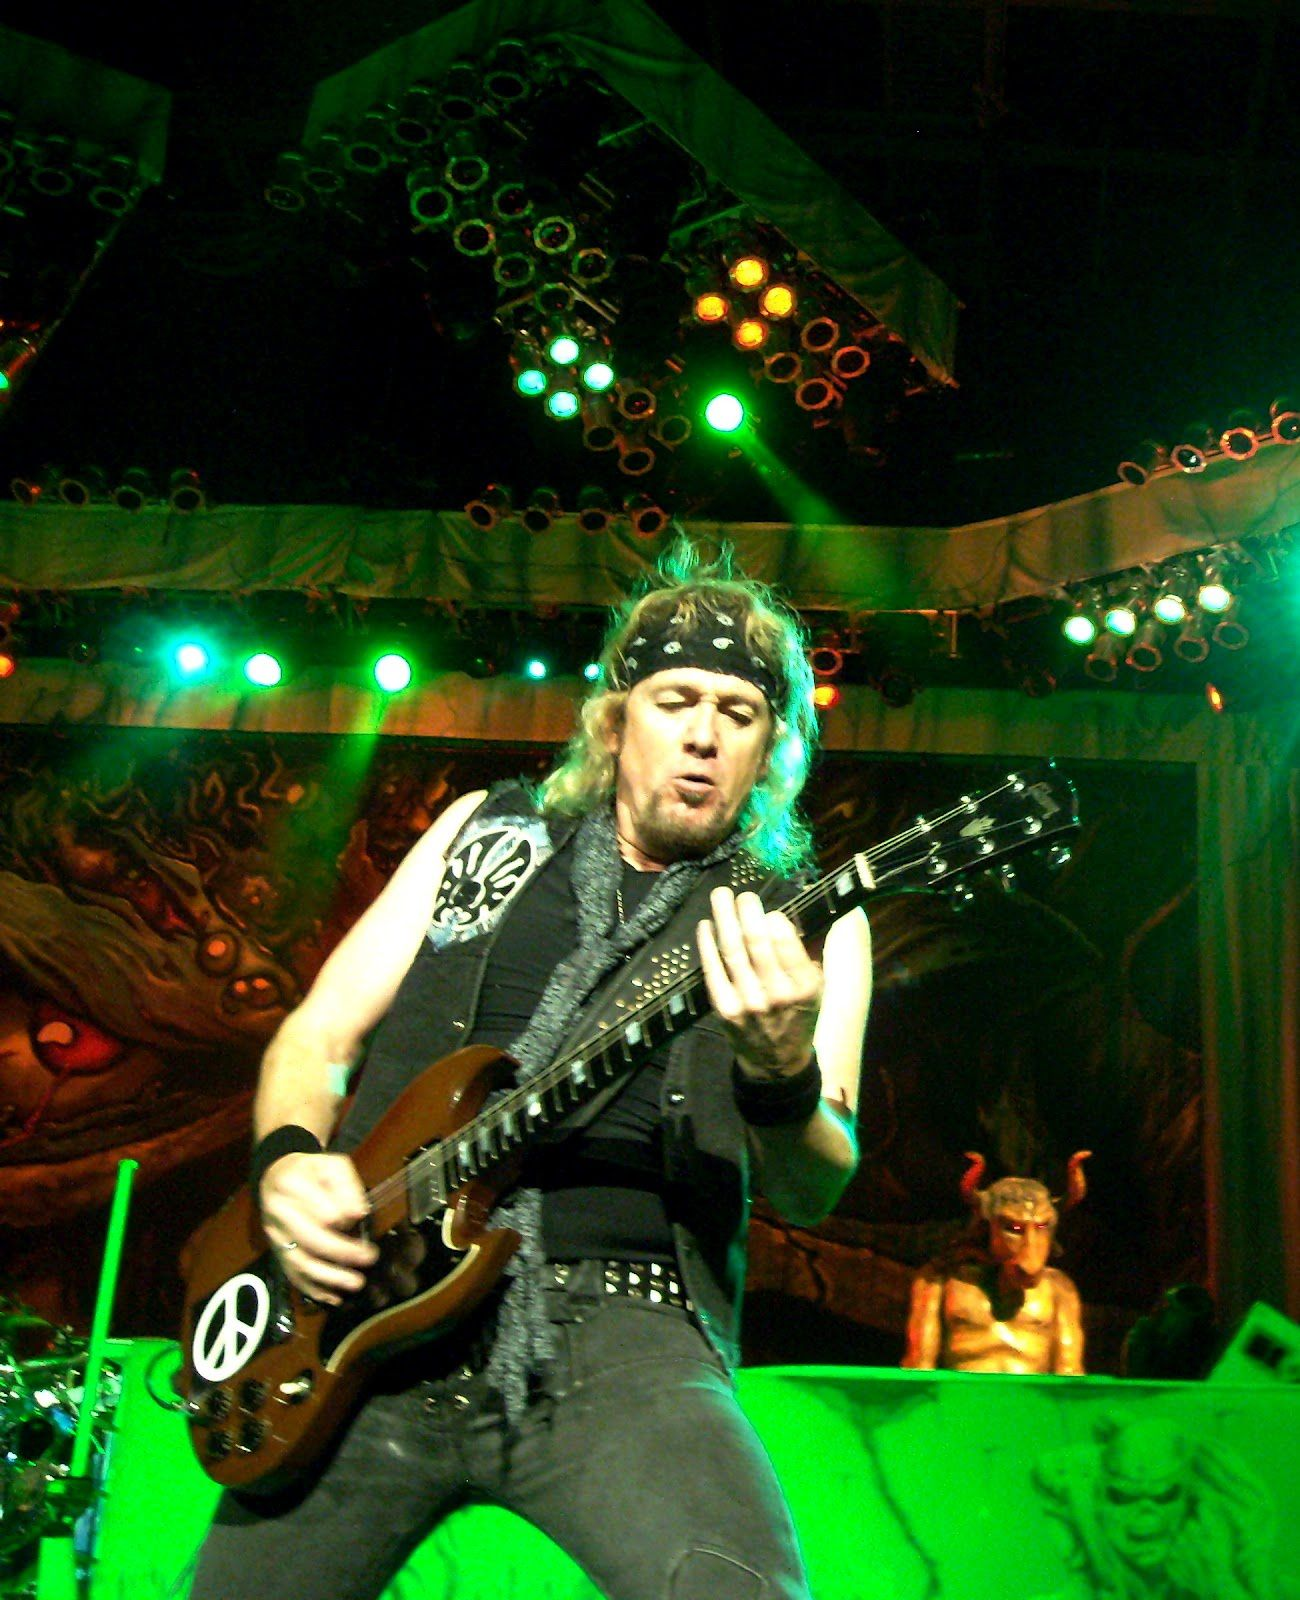 Guitarist Adrian Smith plays The Number Of The Beast near Auburn (Washington) in 2012